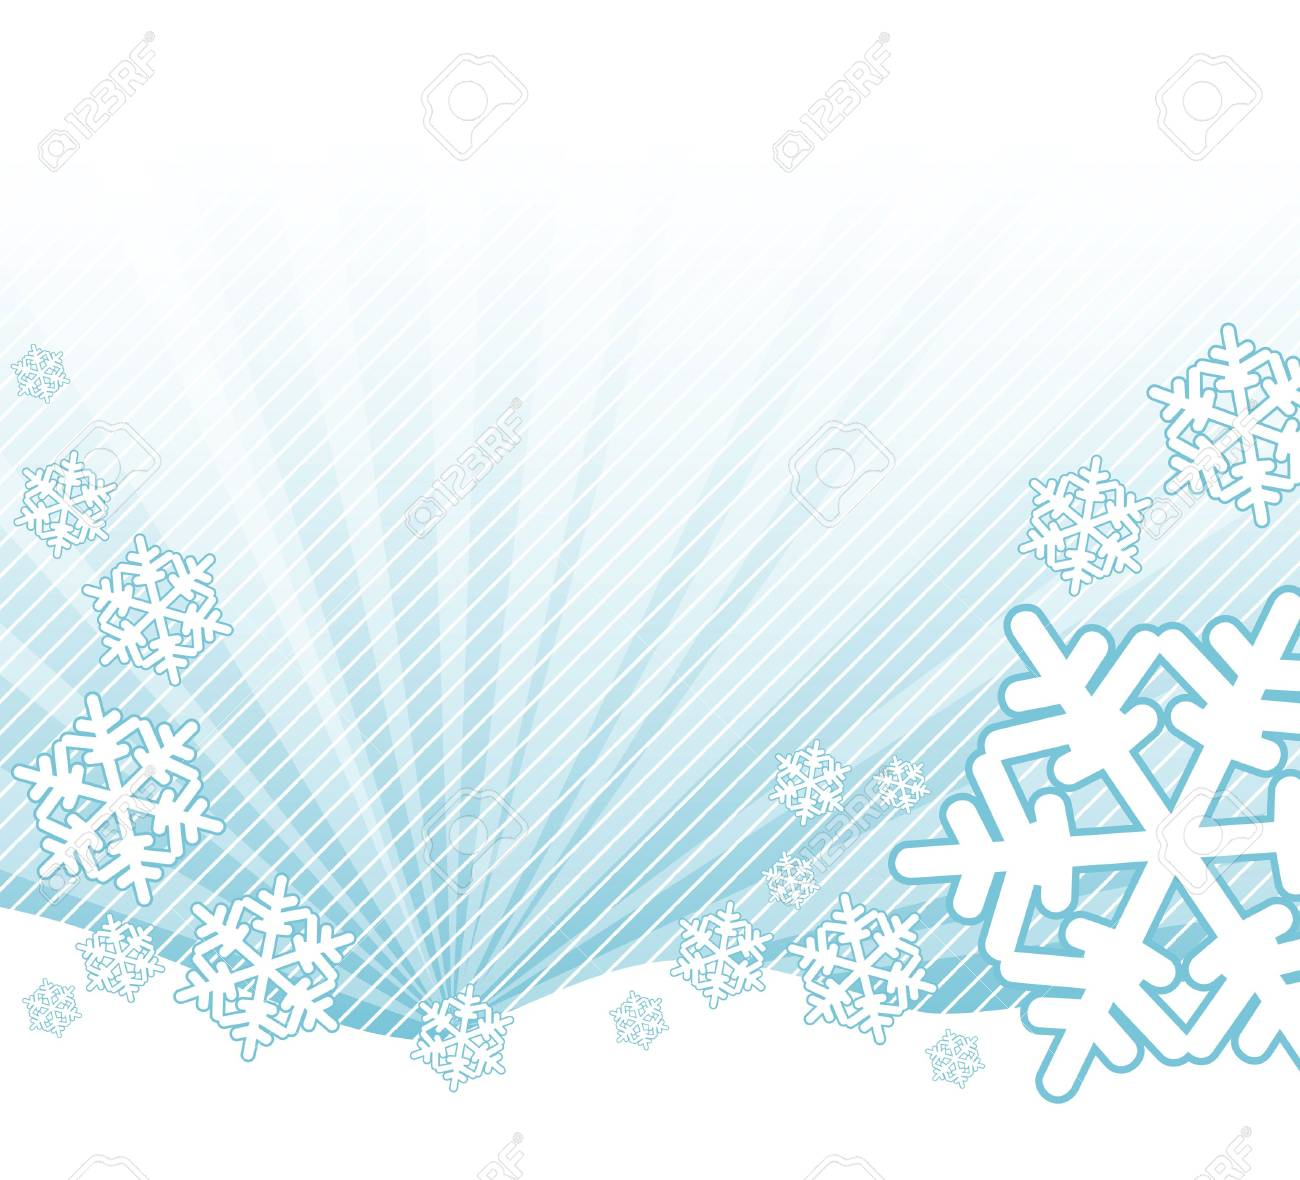 Snow falling on the landscape - abstract illustration Stock Photo - 2136473